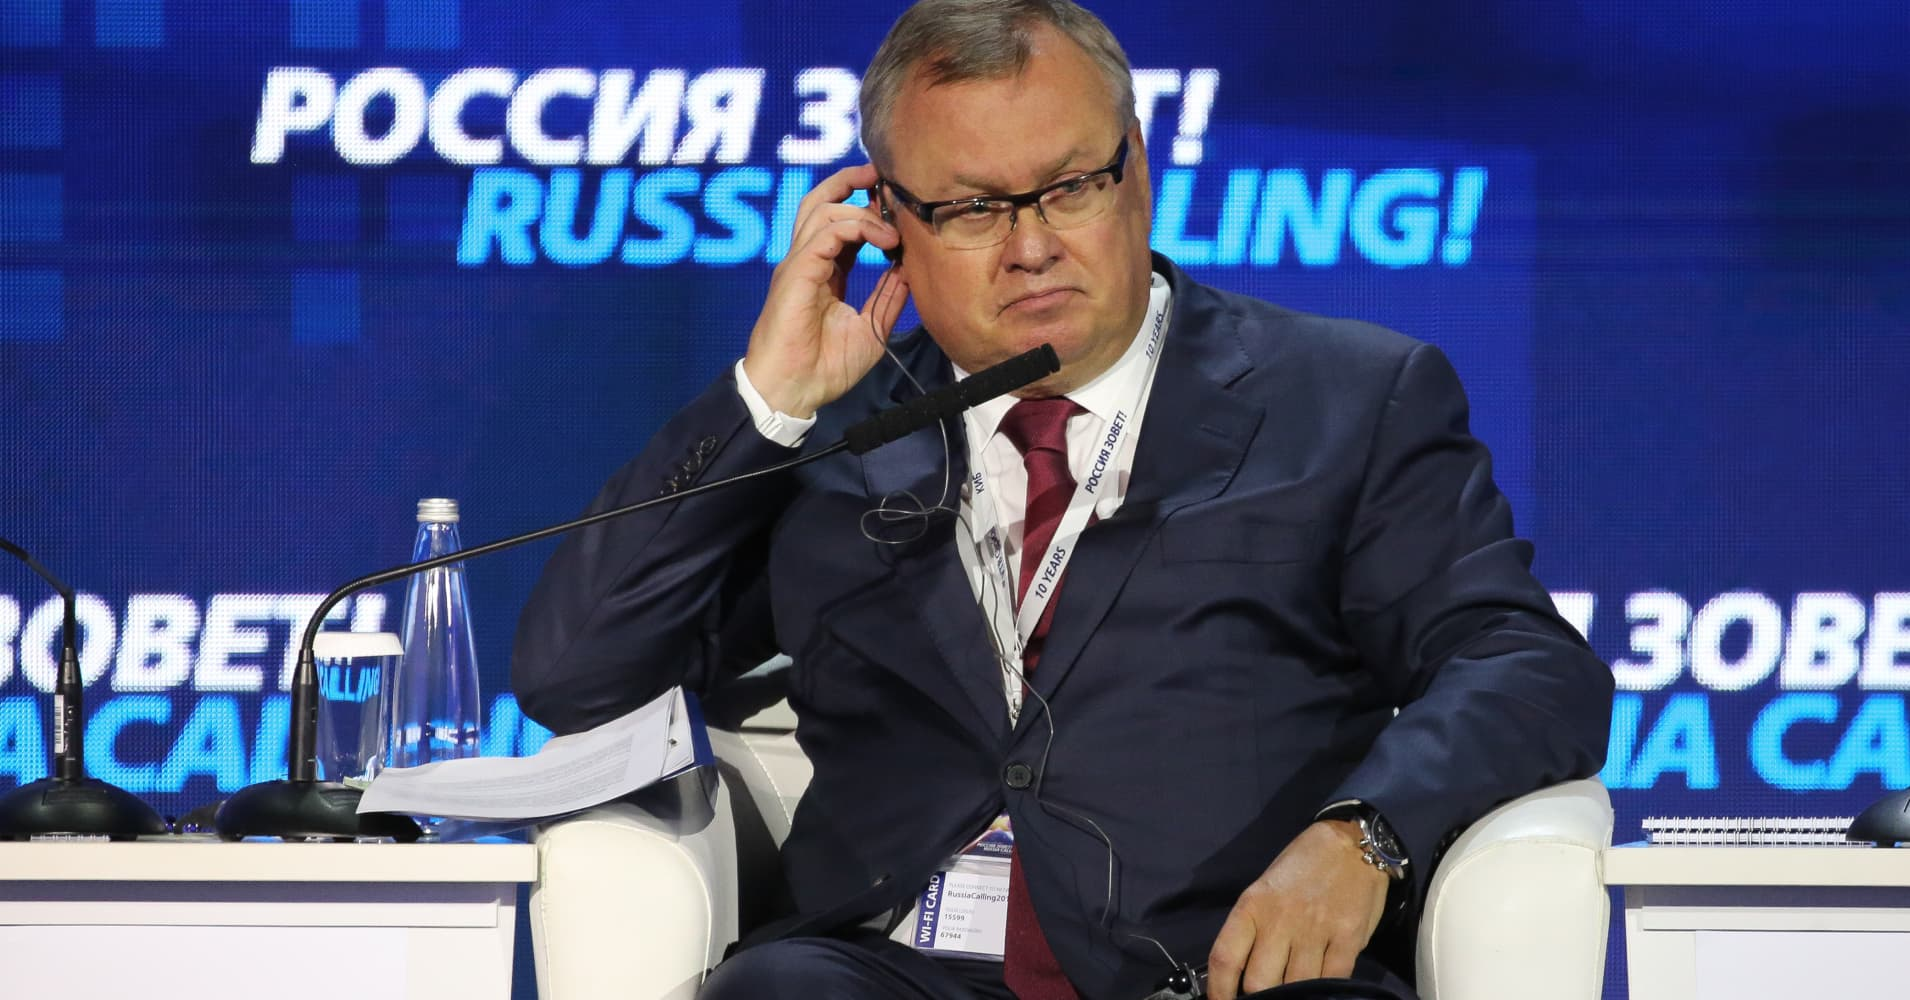 After Mueller findings, US-Russian relations can hopefully 'start again,' VTB's Kostin says